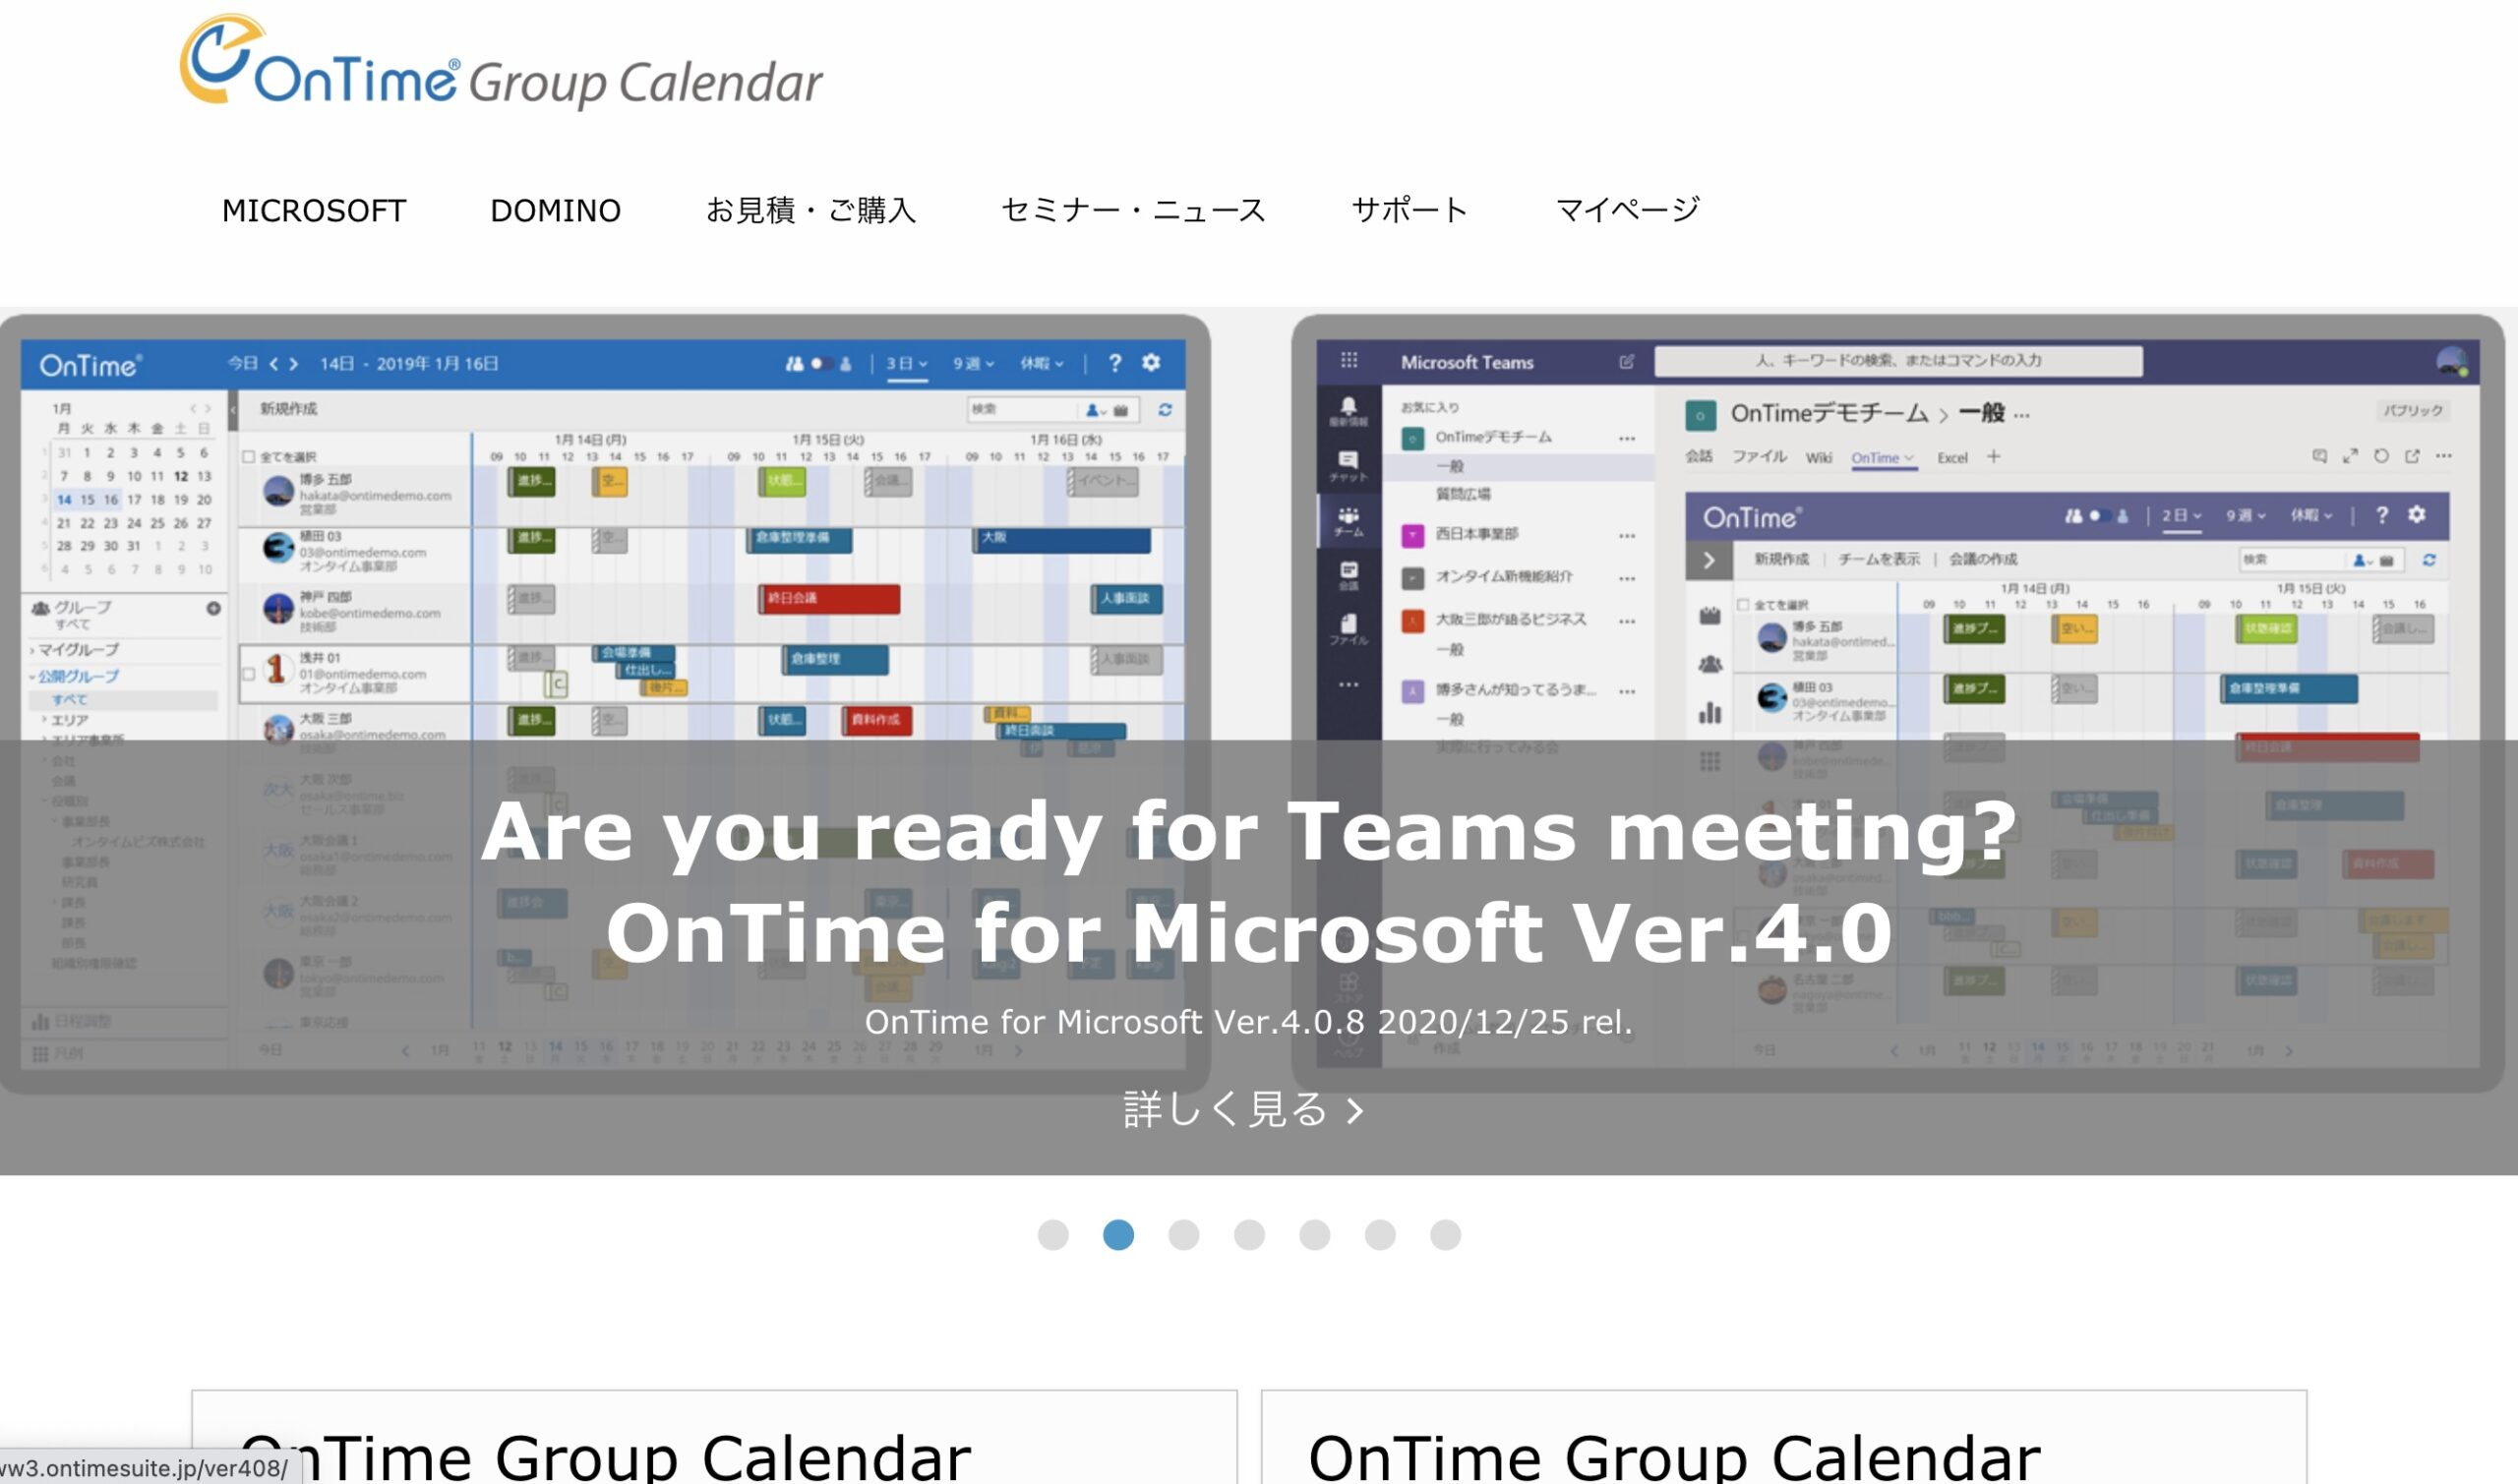 Ontime Group Calendar